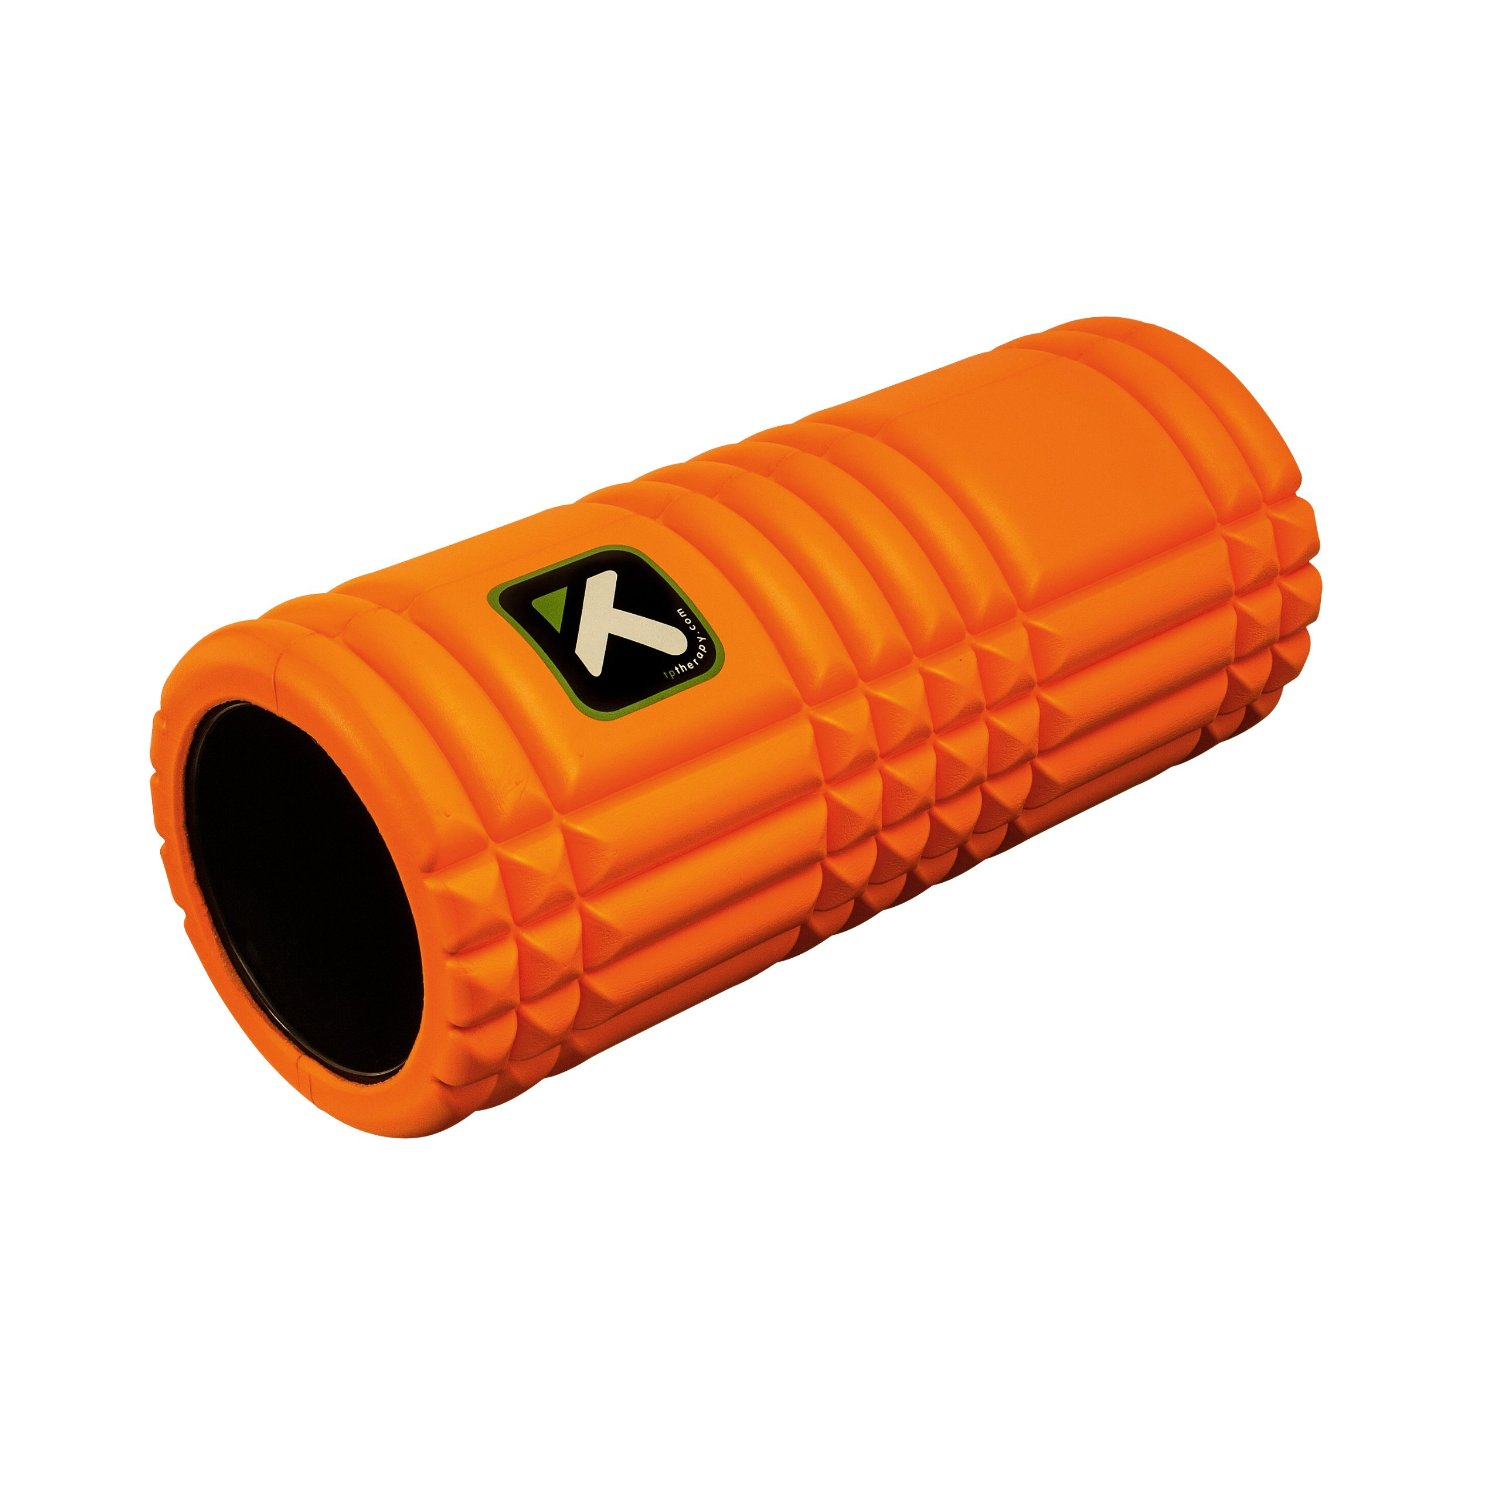 Trigger Point Therapy The Grid Foam Massage Roller